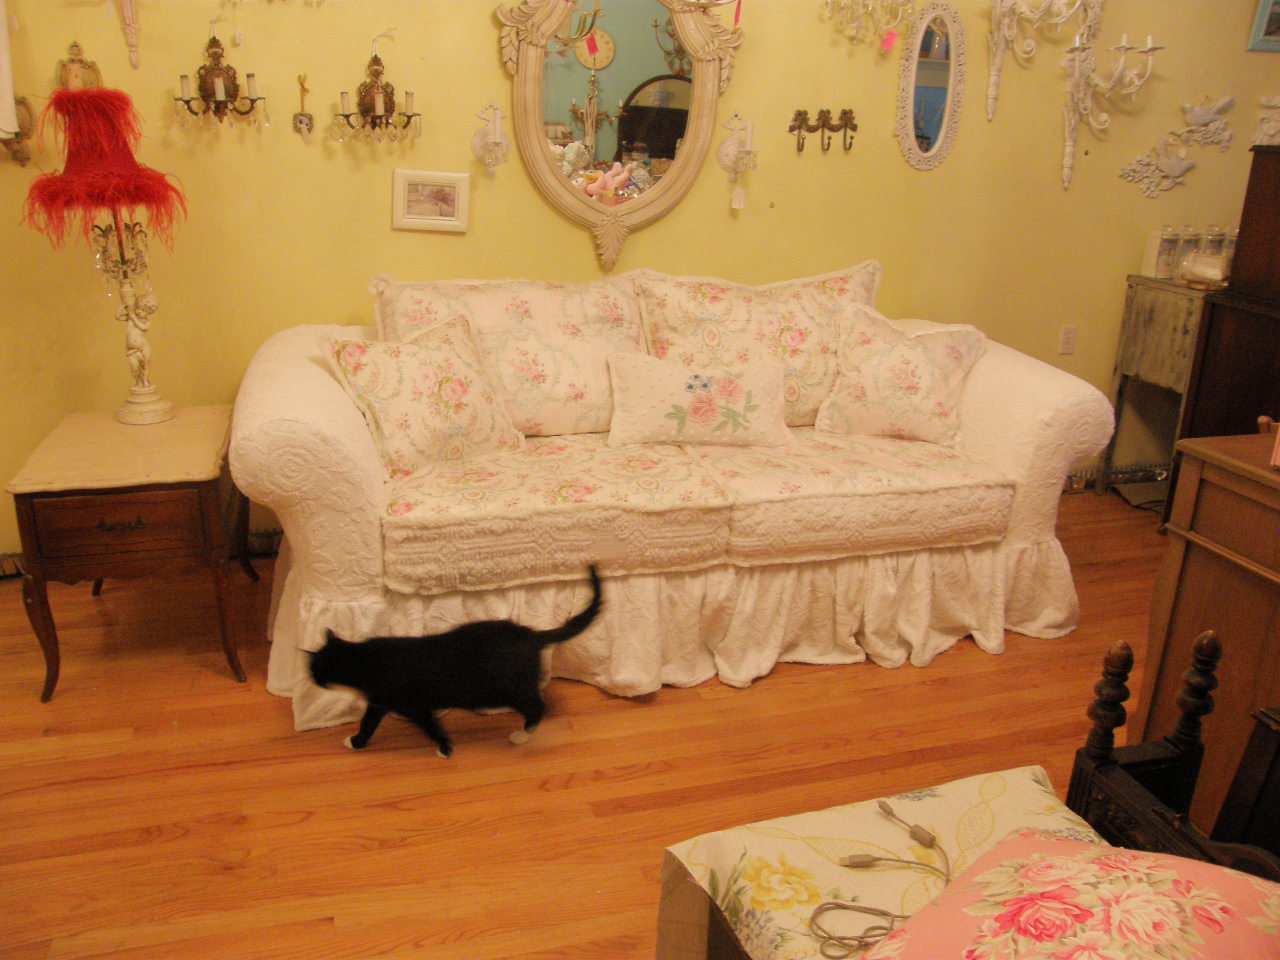 Vintage Chic Furniture Schenectady Ny Omg My New Sofa